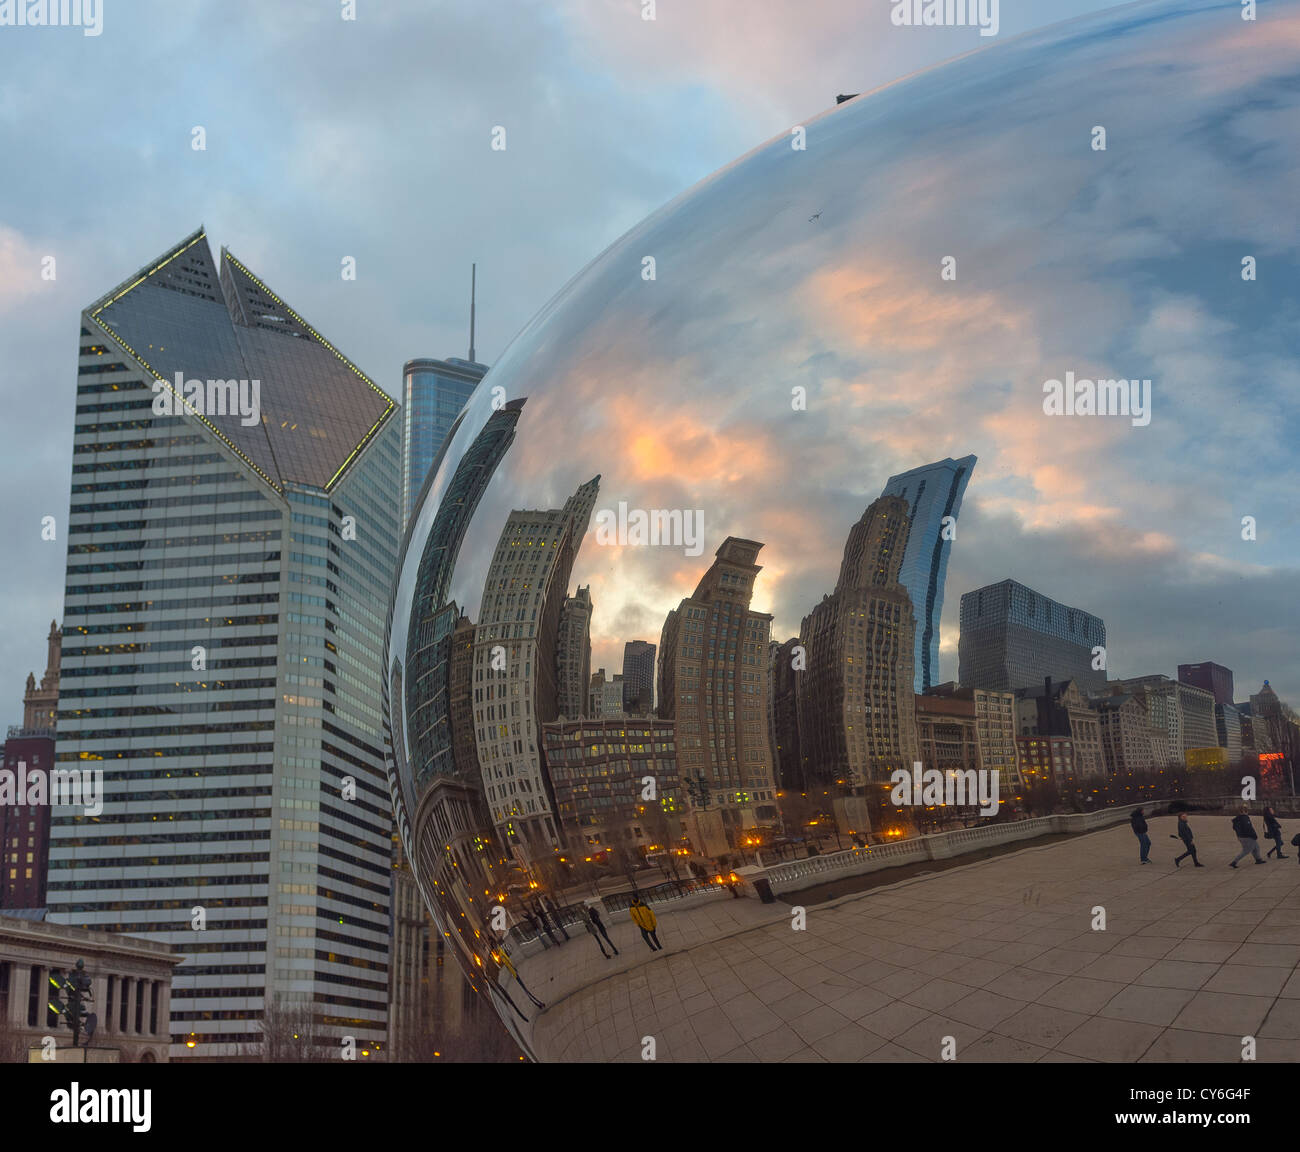 Chicago, Illinois Cloud Gate aka 'The Bean' reflects the city skyline with the Smurfit-Stone Building, in - Stock Image